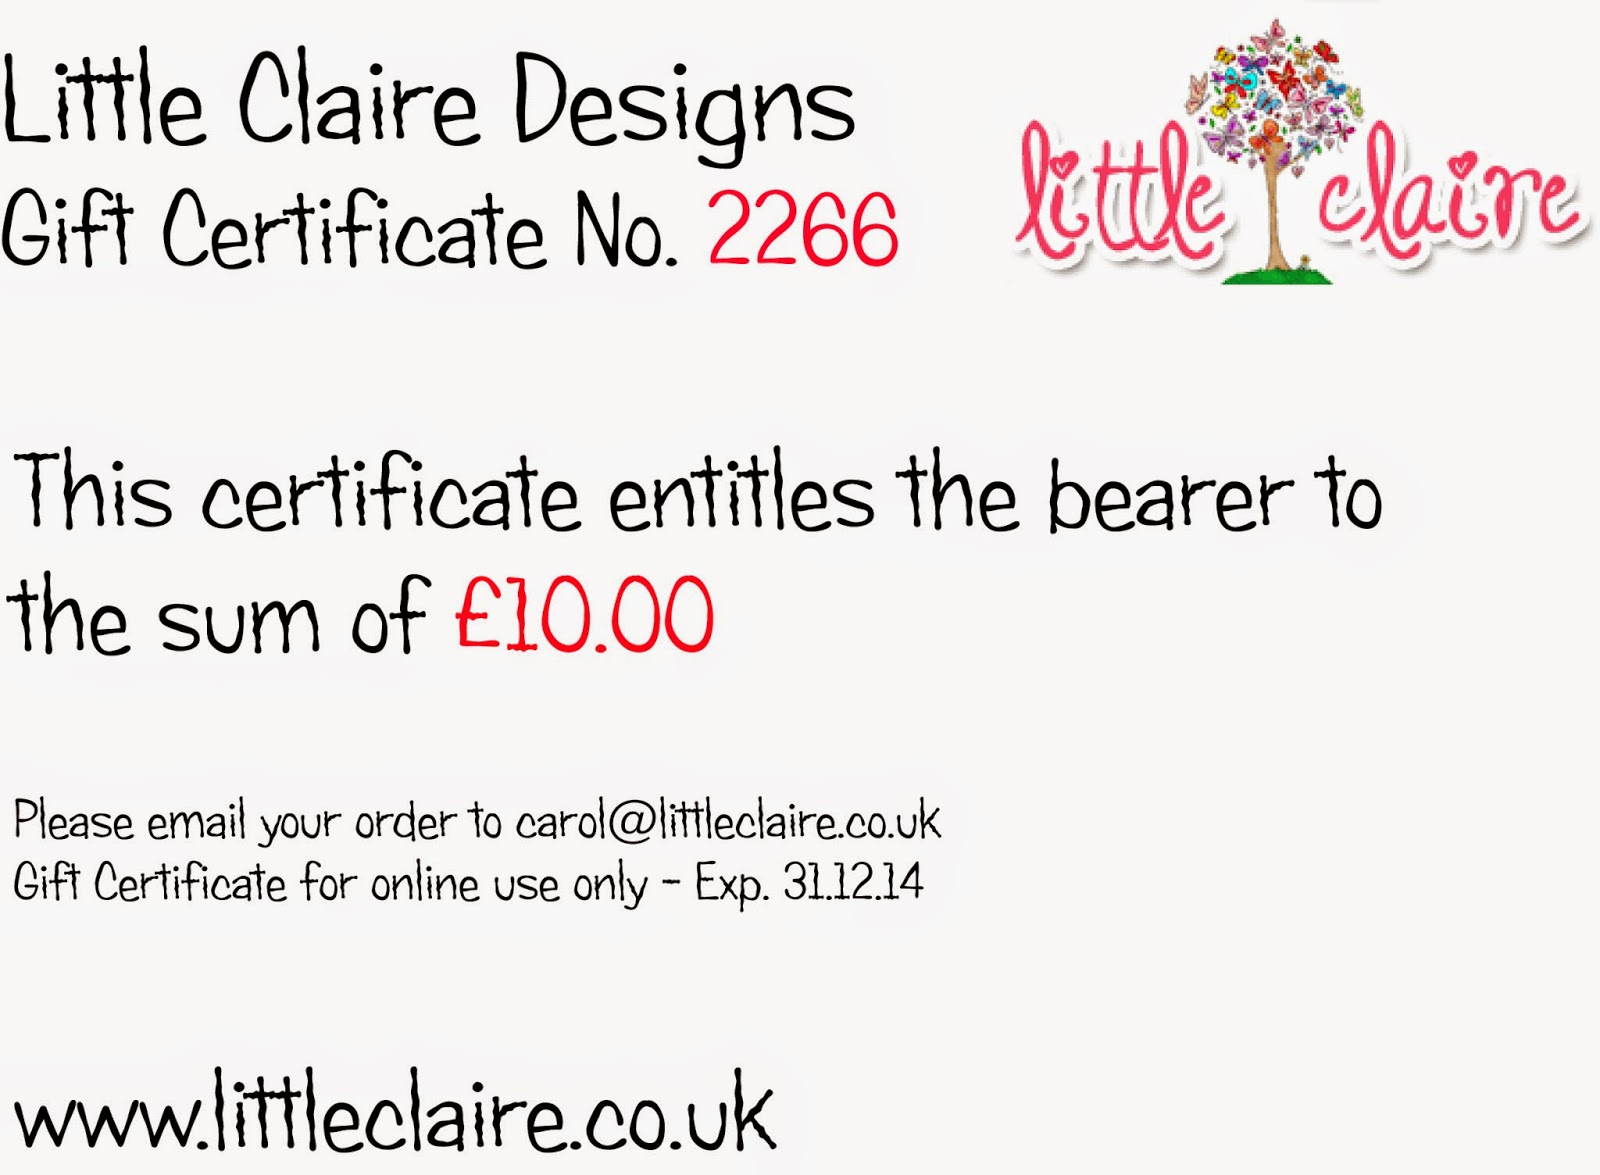 http://www.littleclaire.co.uk/?xyz=16